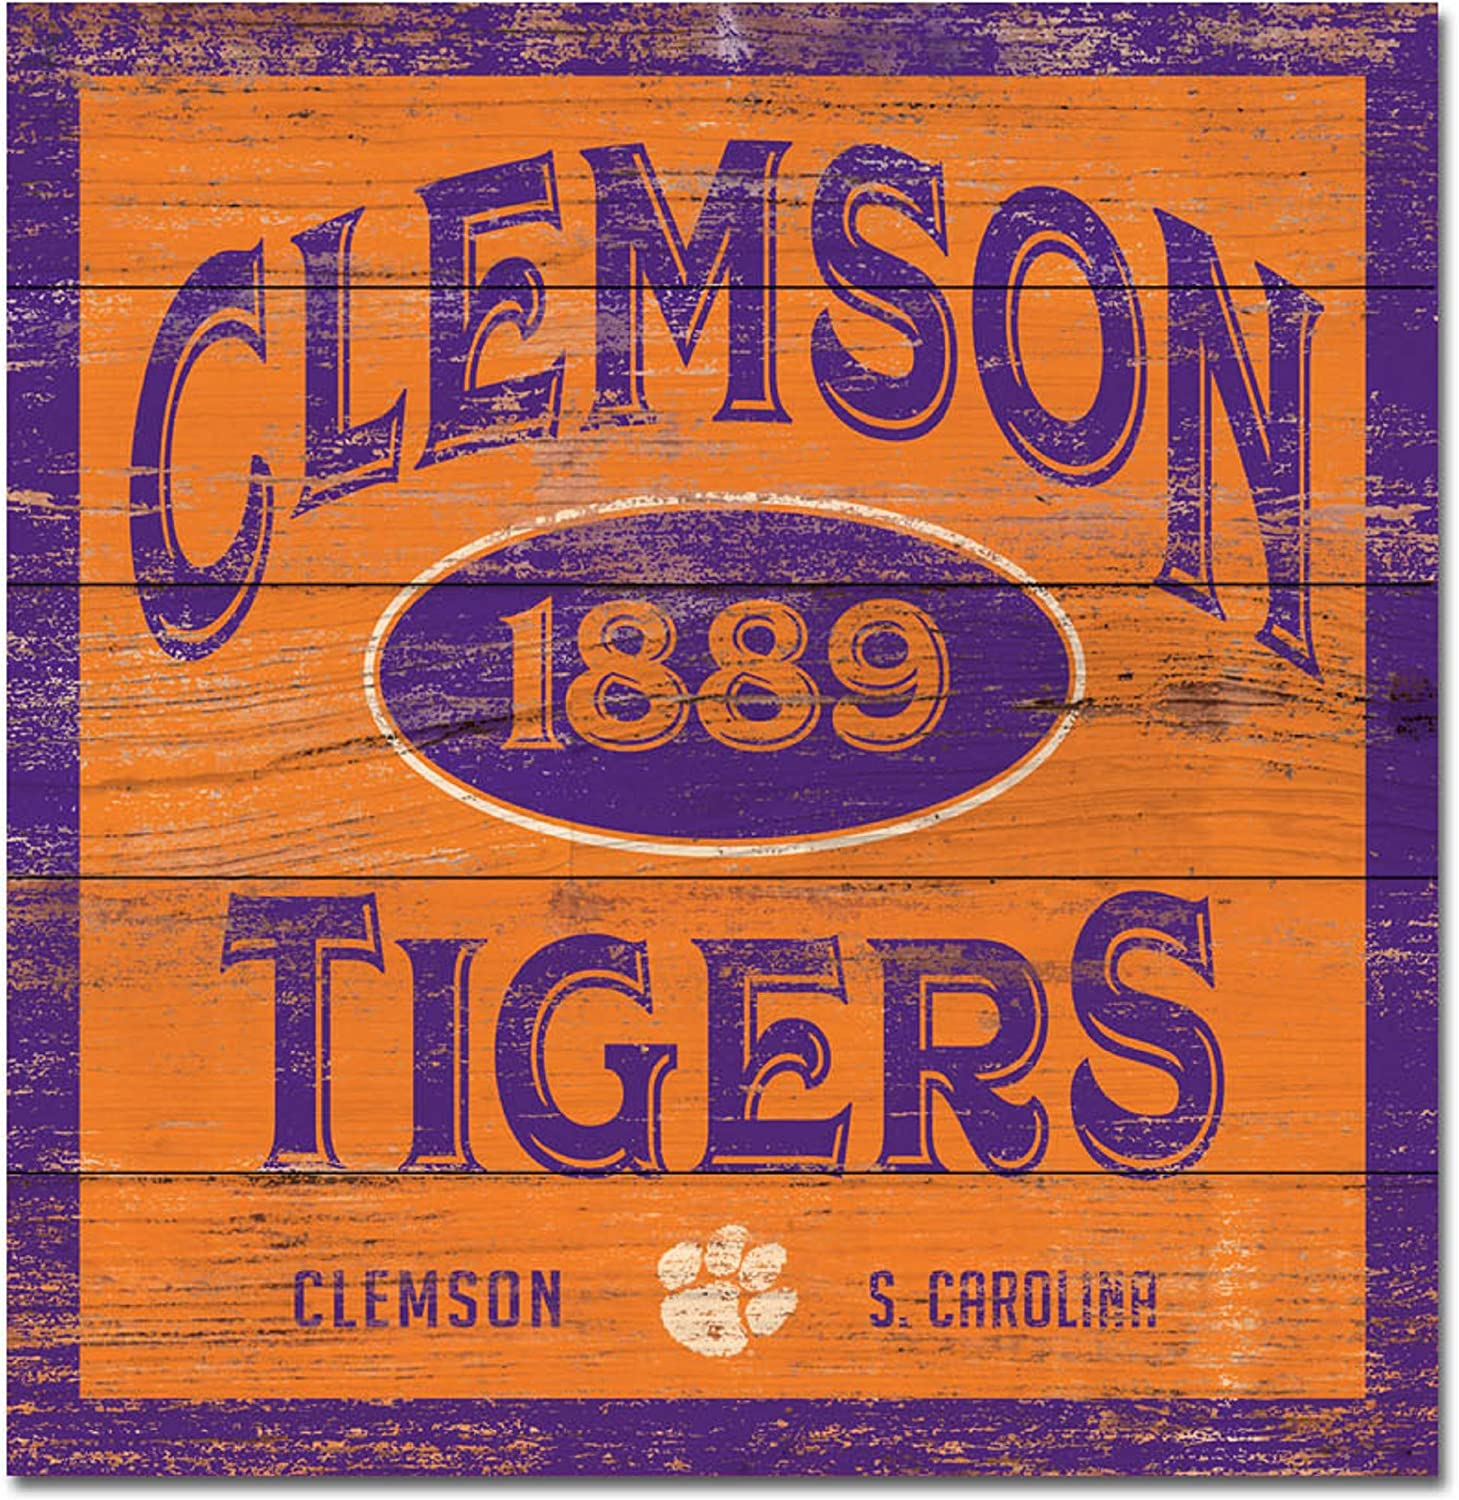 One Size Wood NCAA Fan Shop Clemson Tigers Legacy Wood Plank Square 17x17